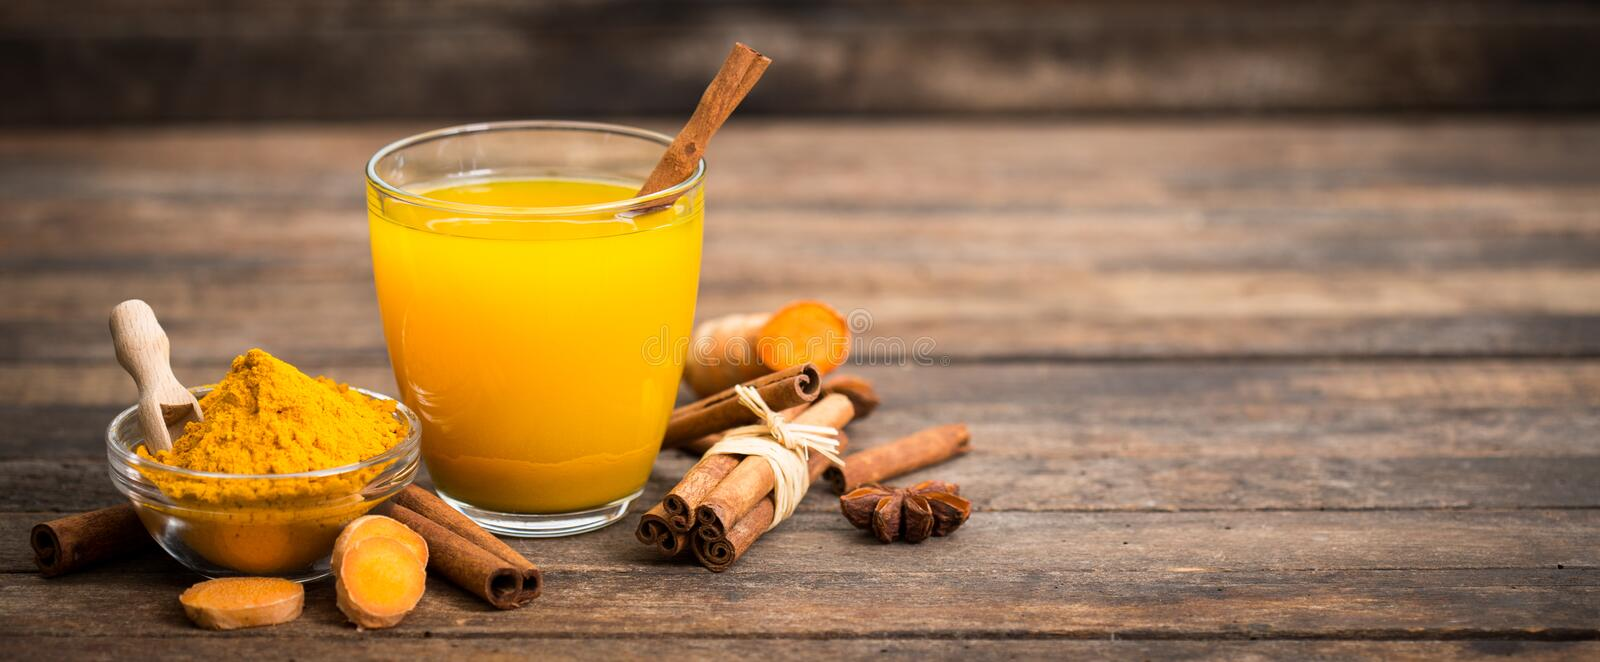 Healthy turmeric drink with honey, cinnamon, lemon and ginger royalty free stock photos